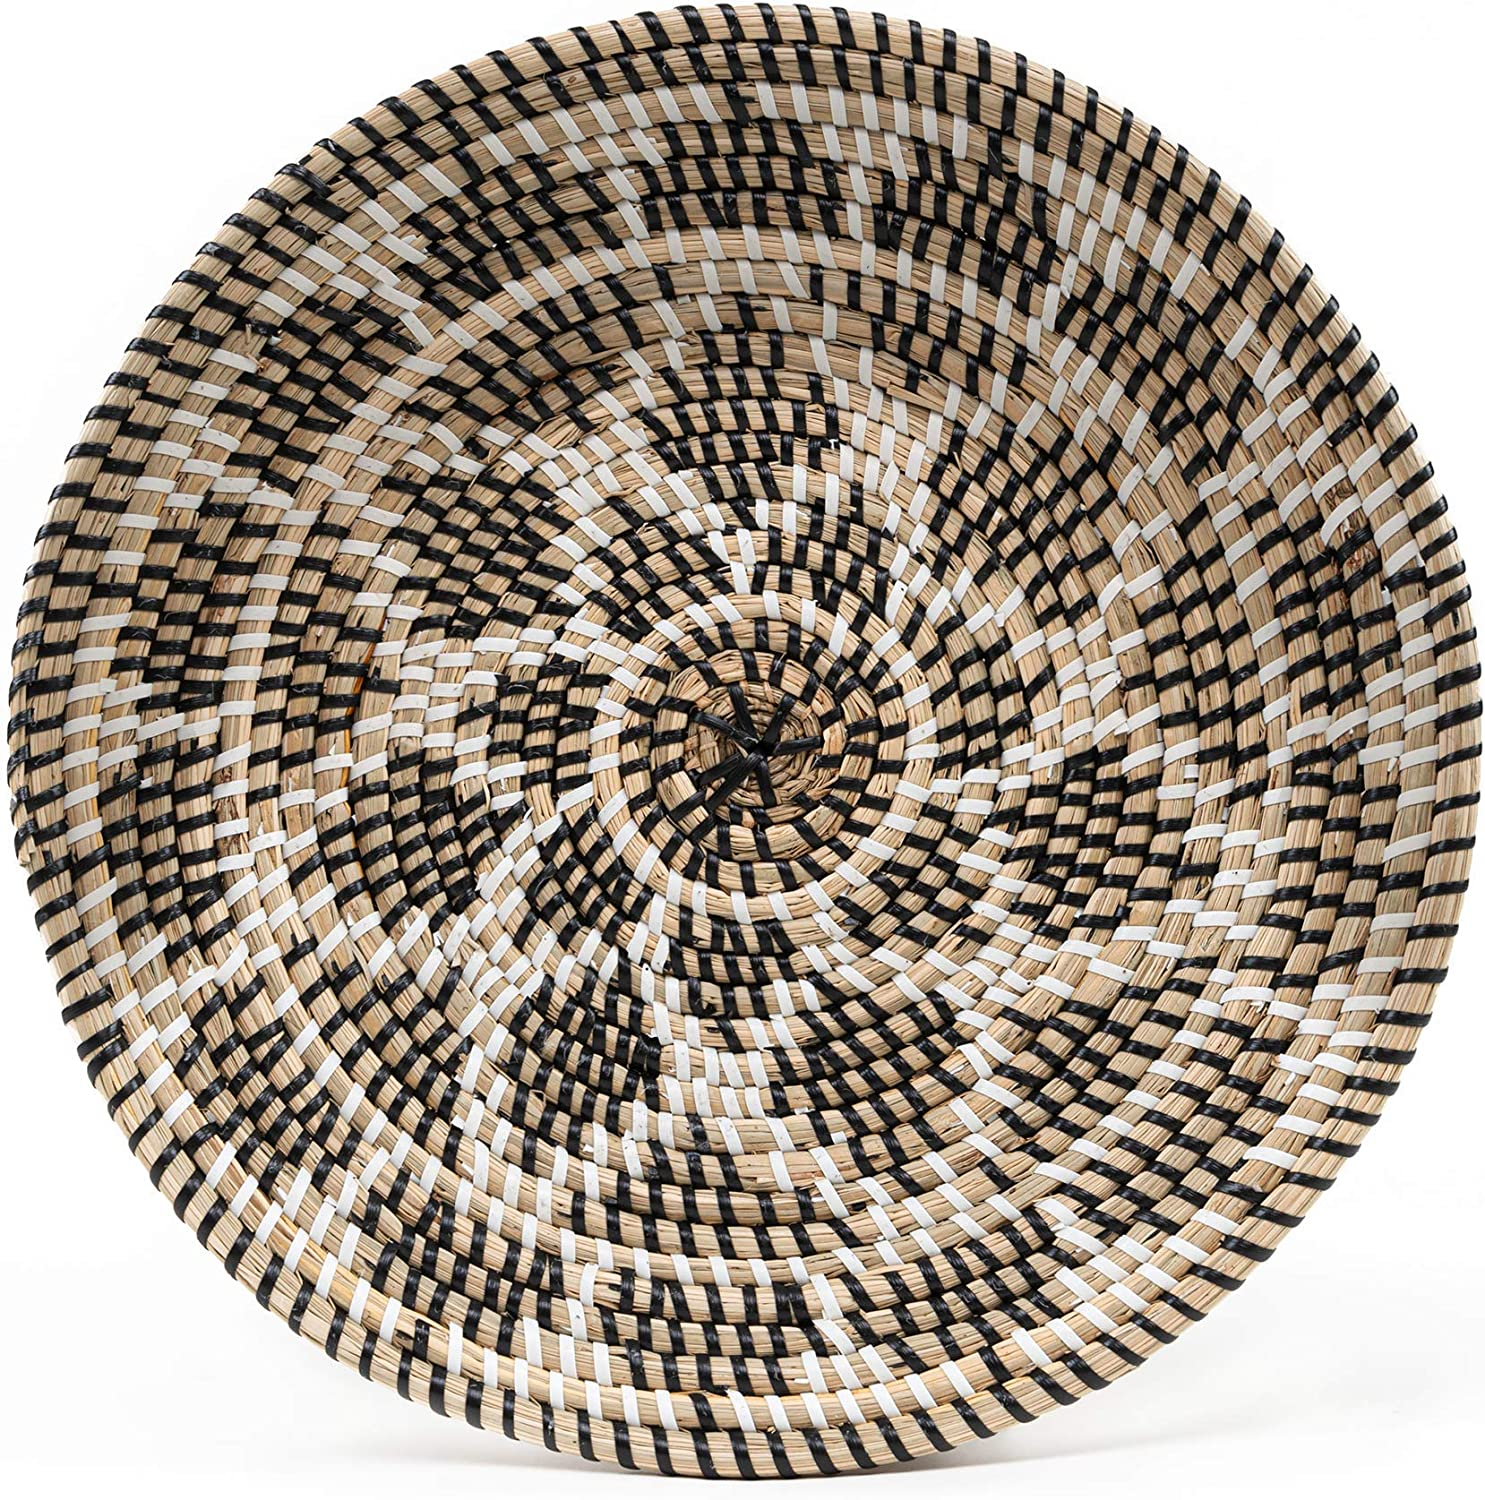 HNC ECOLIFE Wall Basket Decor - Hanging Woven Wall Basket - Round Rattan Decorative Bowls - Seagrass Wall Decor - Wall Baskets Decor Boho Flat - Woven Hanging Art (35 cm/13.7 inch)